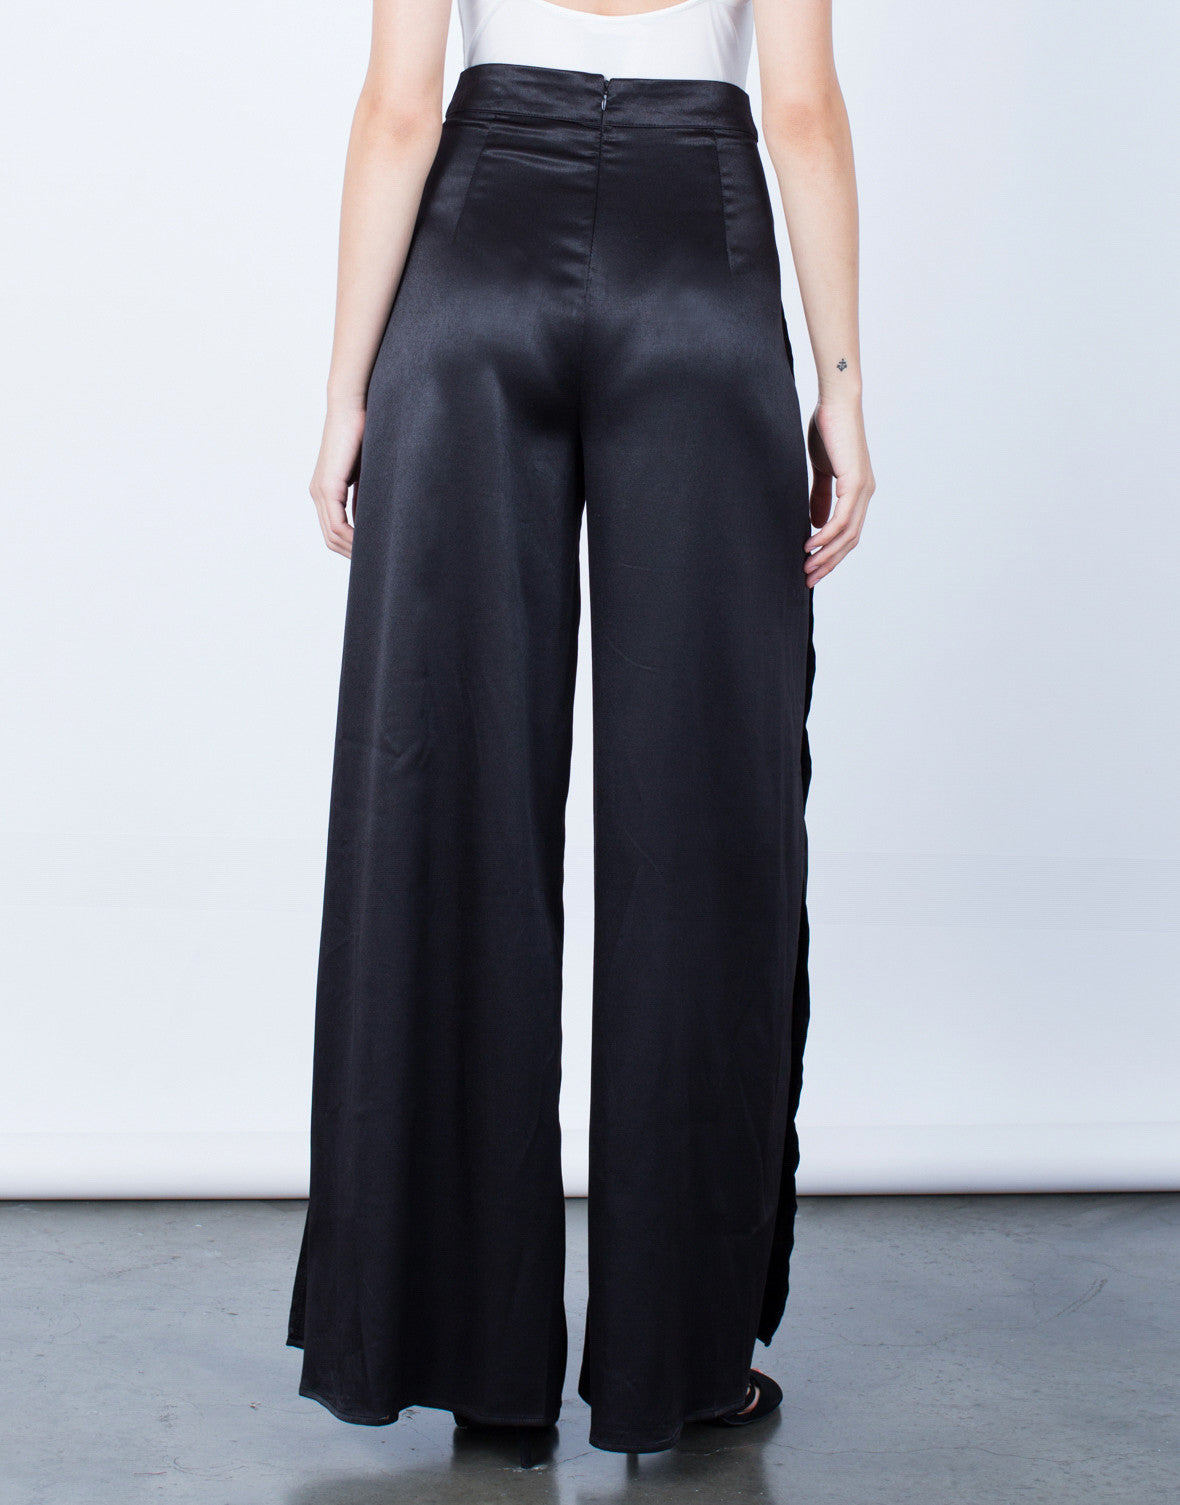 Back View of Make a Statement Satin Pants